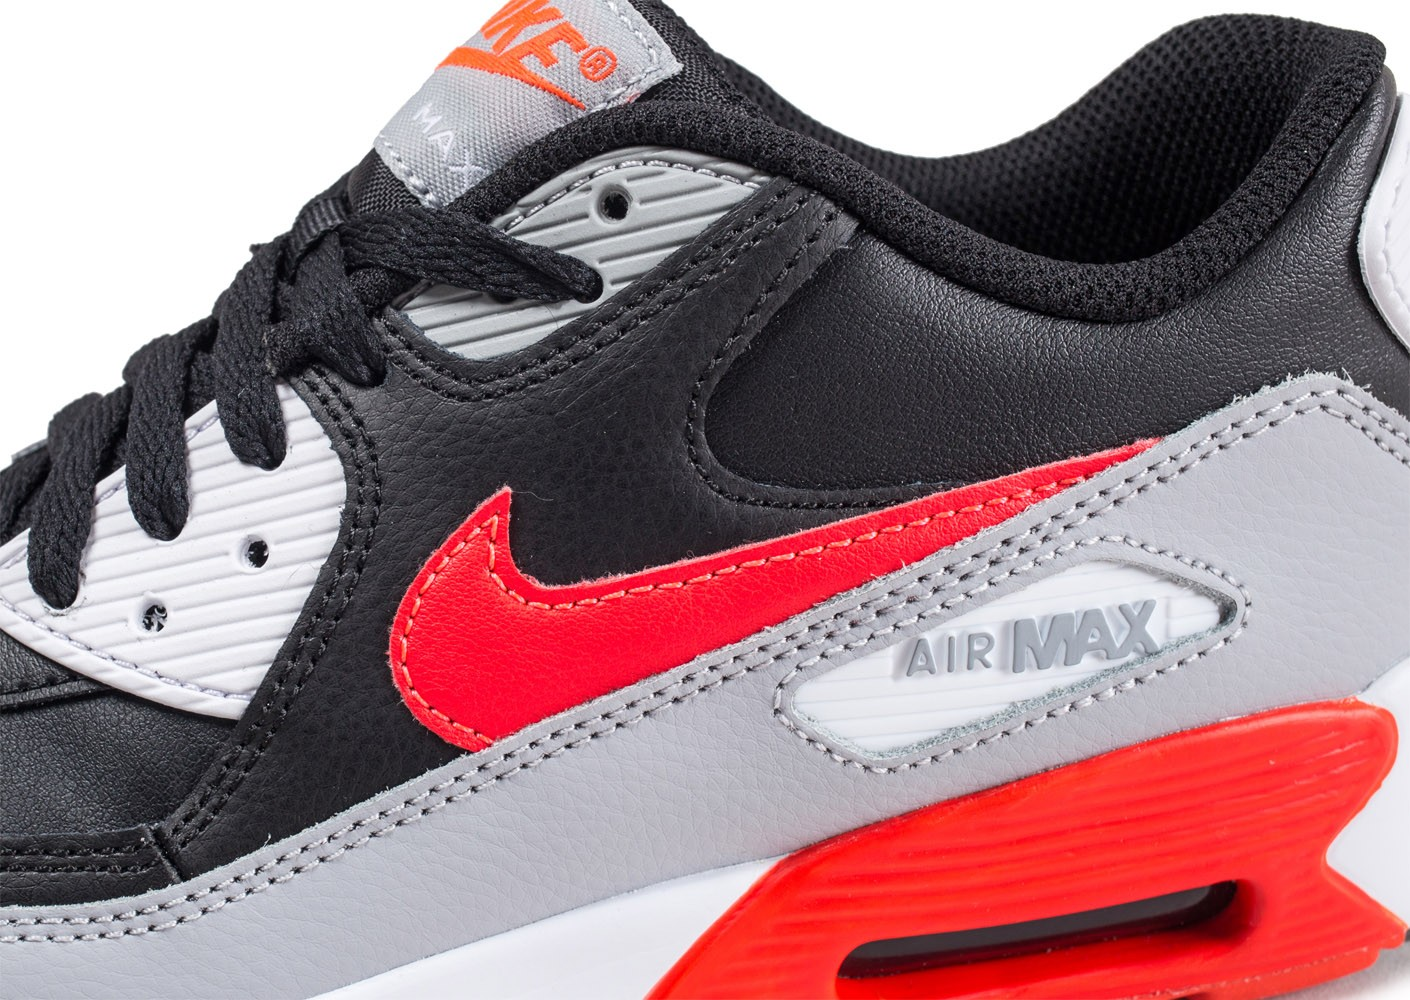 first rate cheap prices casual shoes air max 90 leather rouge